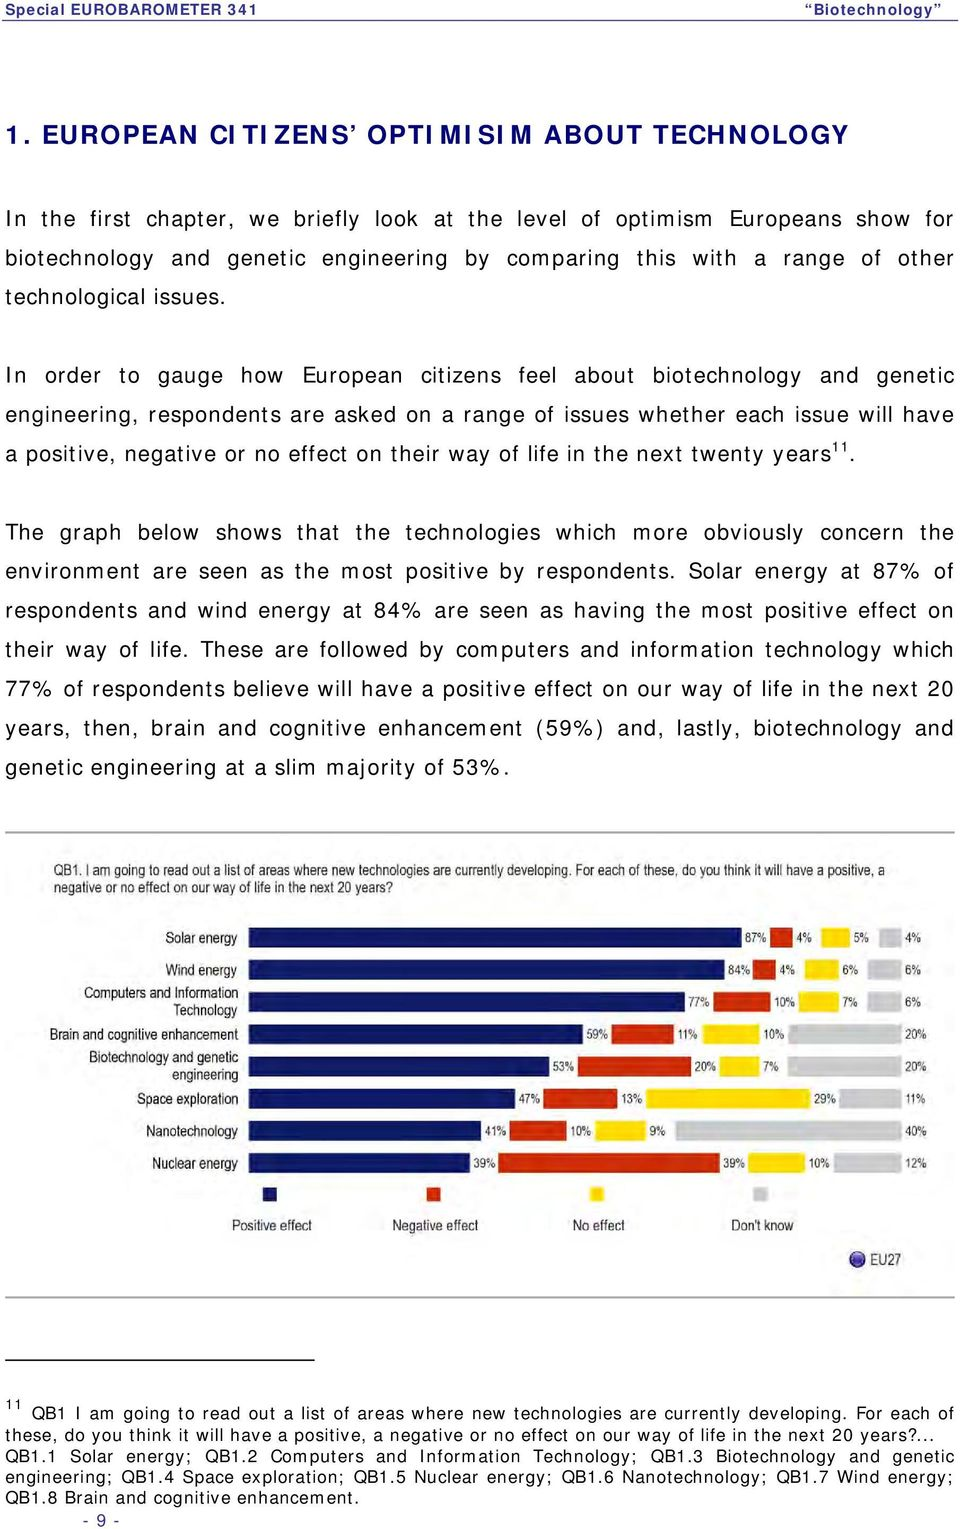 In order to gauge how European citizens feel about biotechnology and genetic engineering, respondents are asked on a range of issues whether each issue will have a positive, negative or no effect on